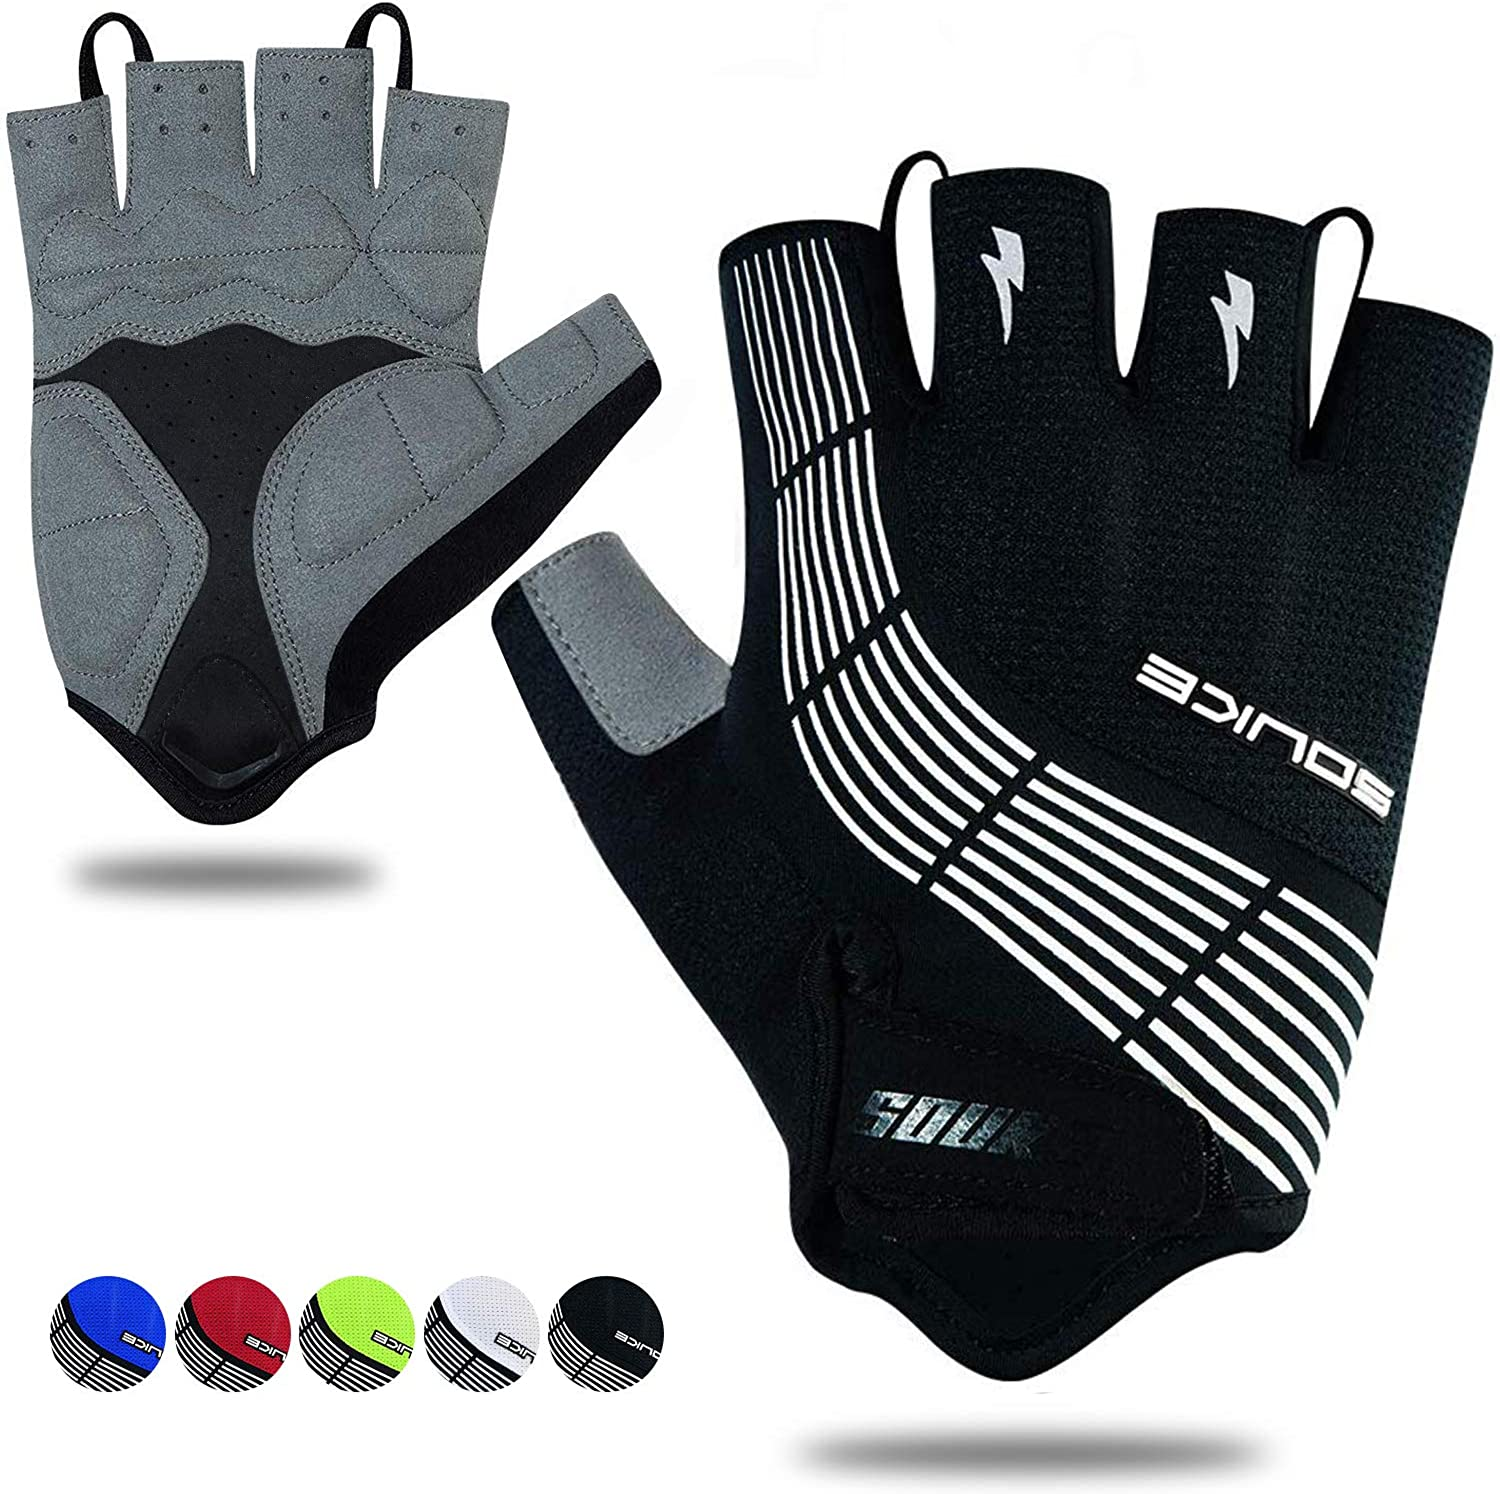 Souke Sports Cycling Bike Gloves Padded Half Finger Bicycle Gloves Shock-Absorbing Anti-Slip Breathable MTB Road Biking Gloves for Men/Women